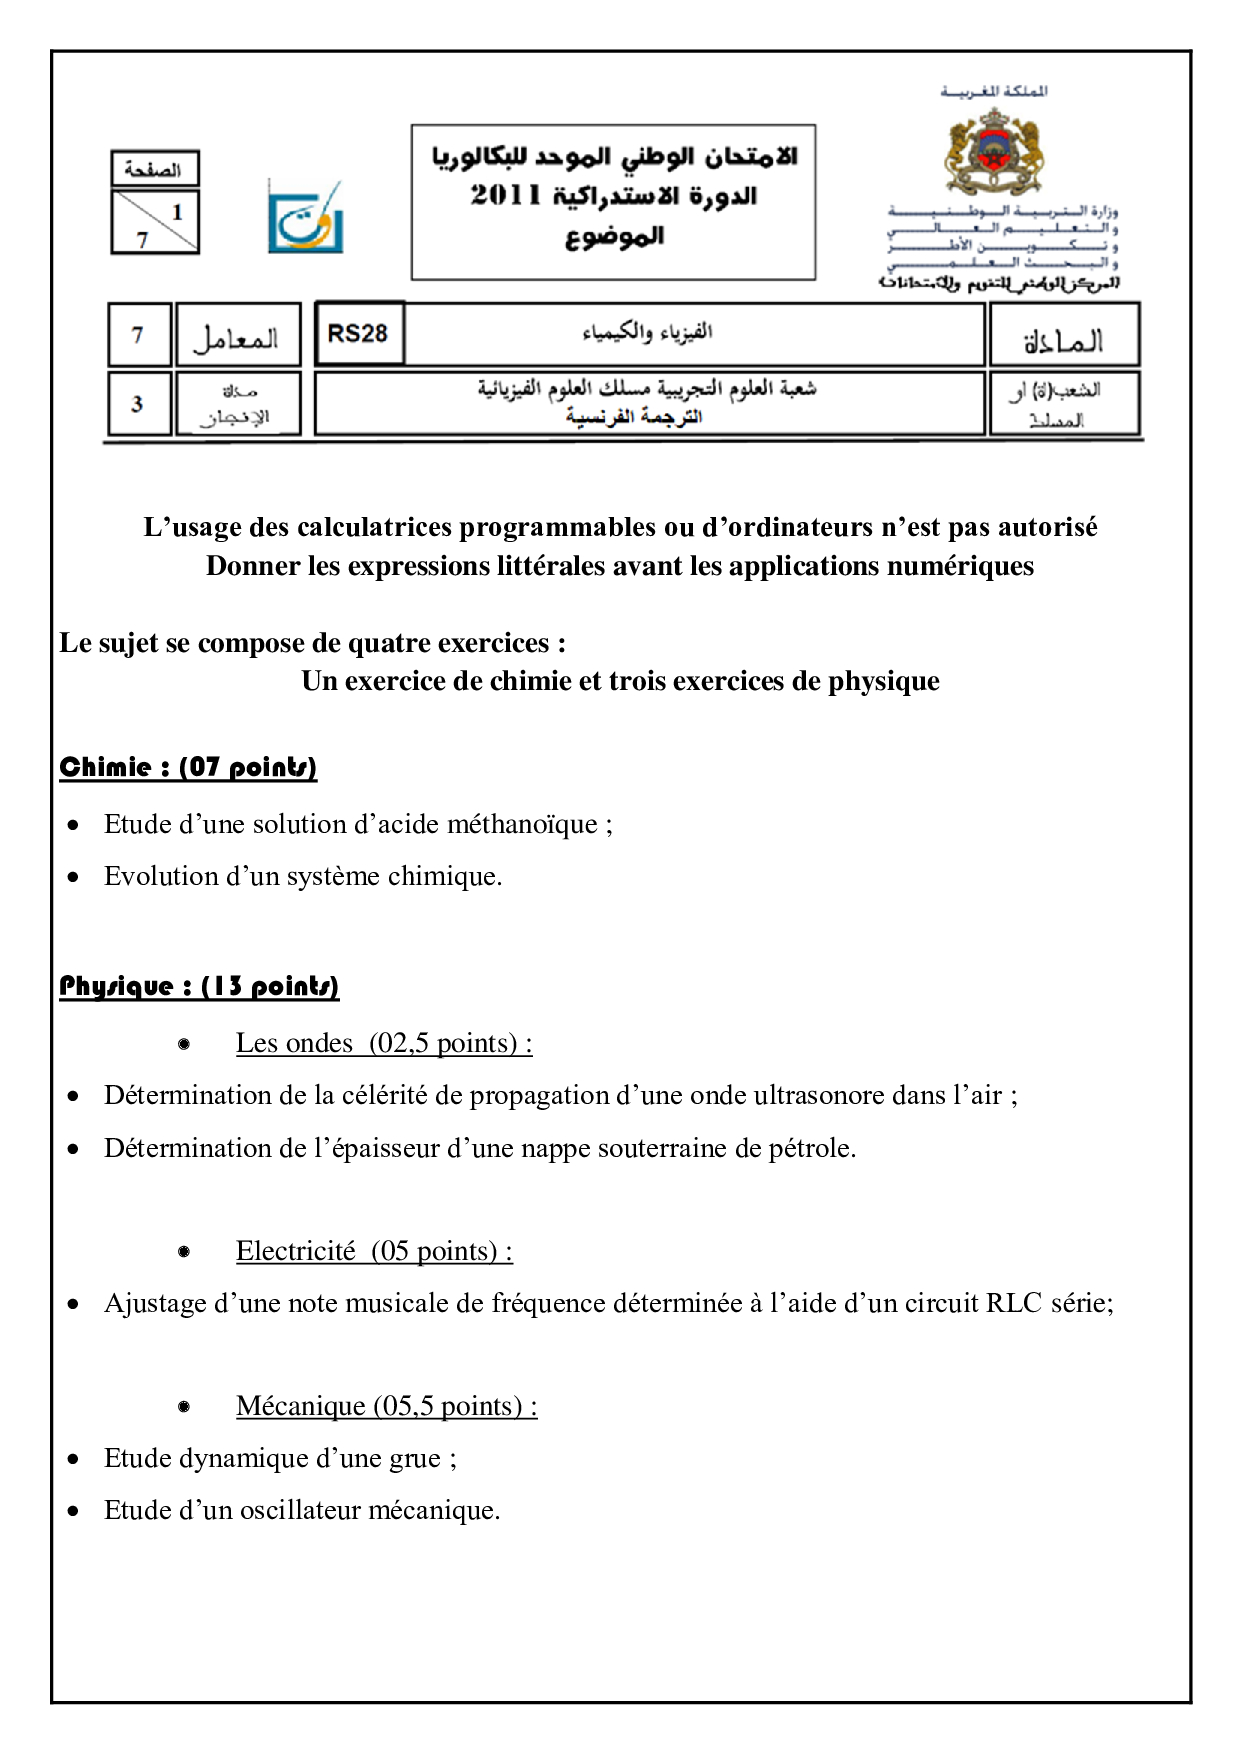 Examen National Physique-Chimie SPC 2011 Rattrapage - Sujet1.jpg